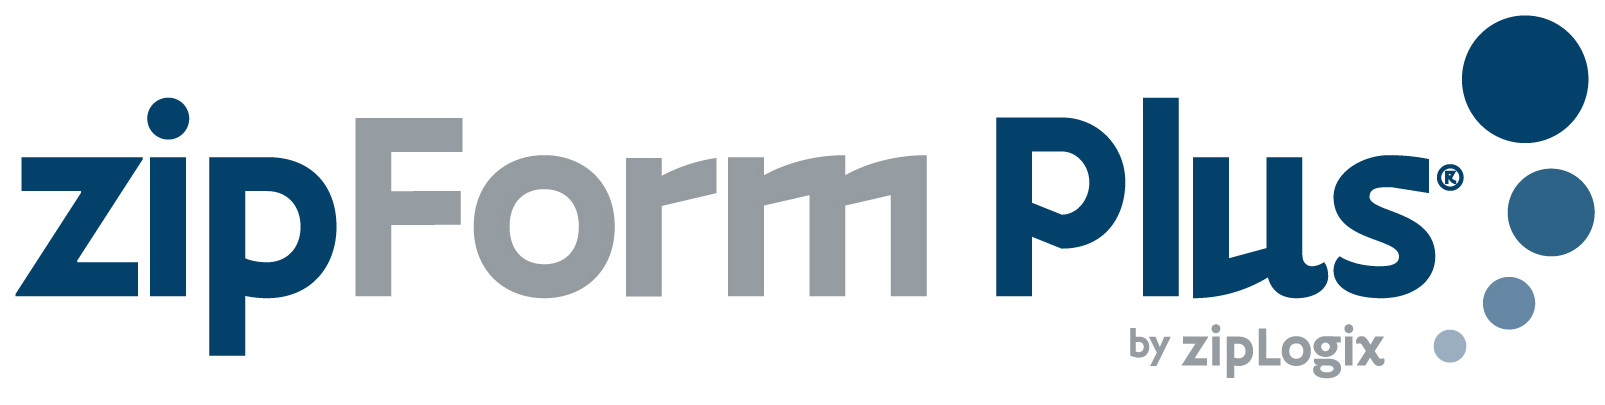 purchase zipforms  zipForm® for Non-Members